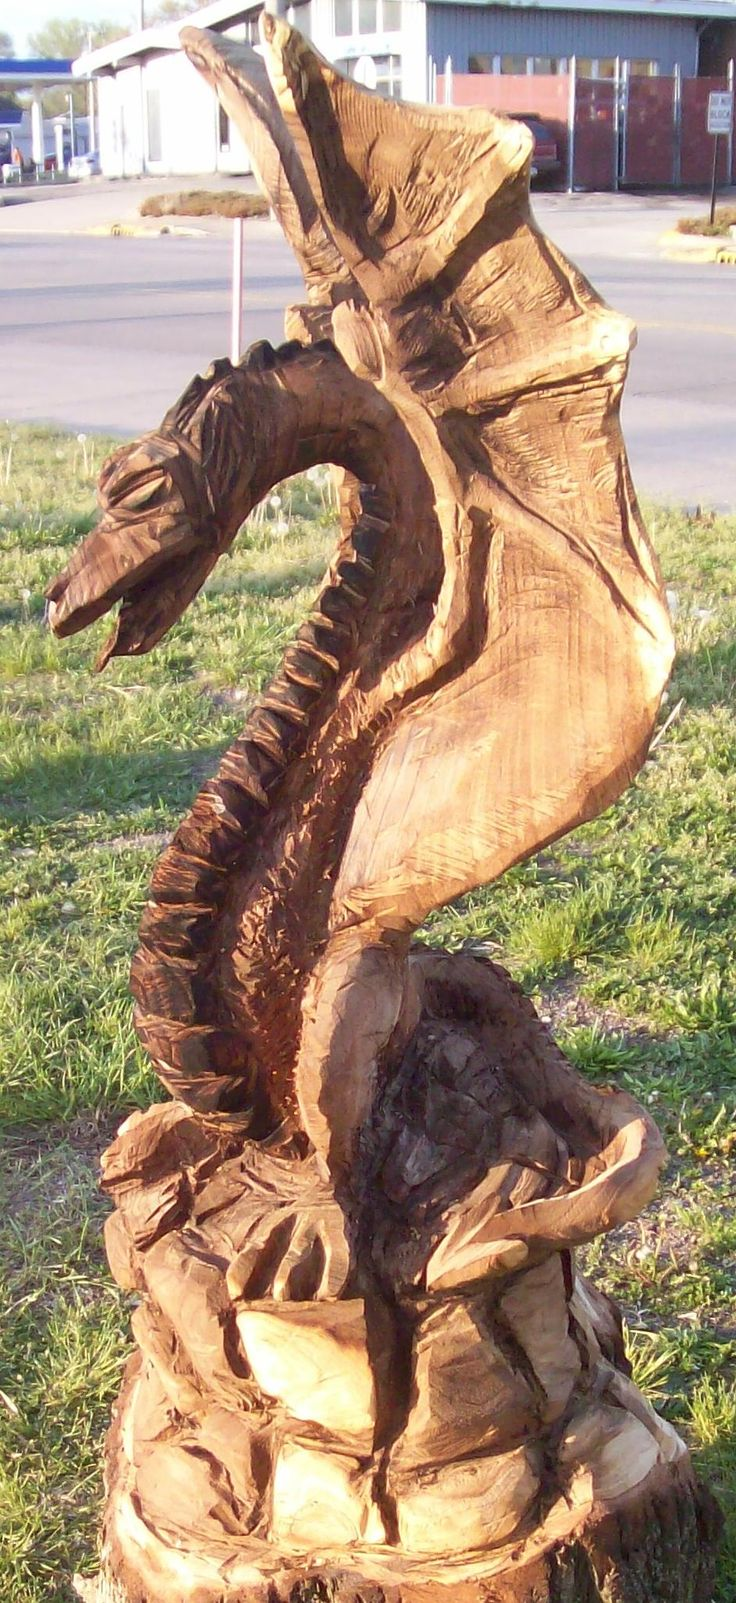 Besten wood chainsaw carving bilder auf pinterest